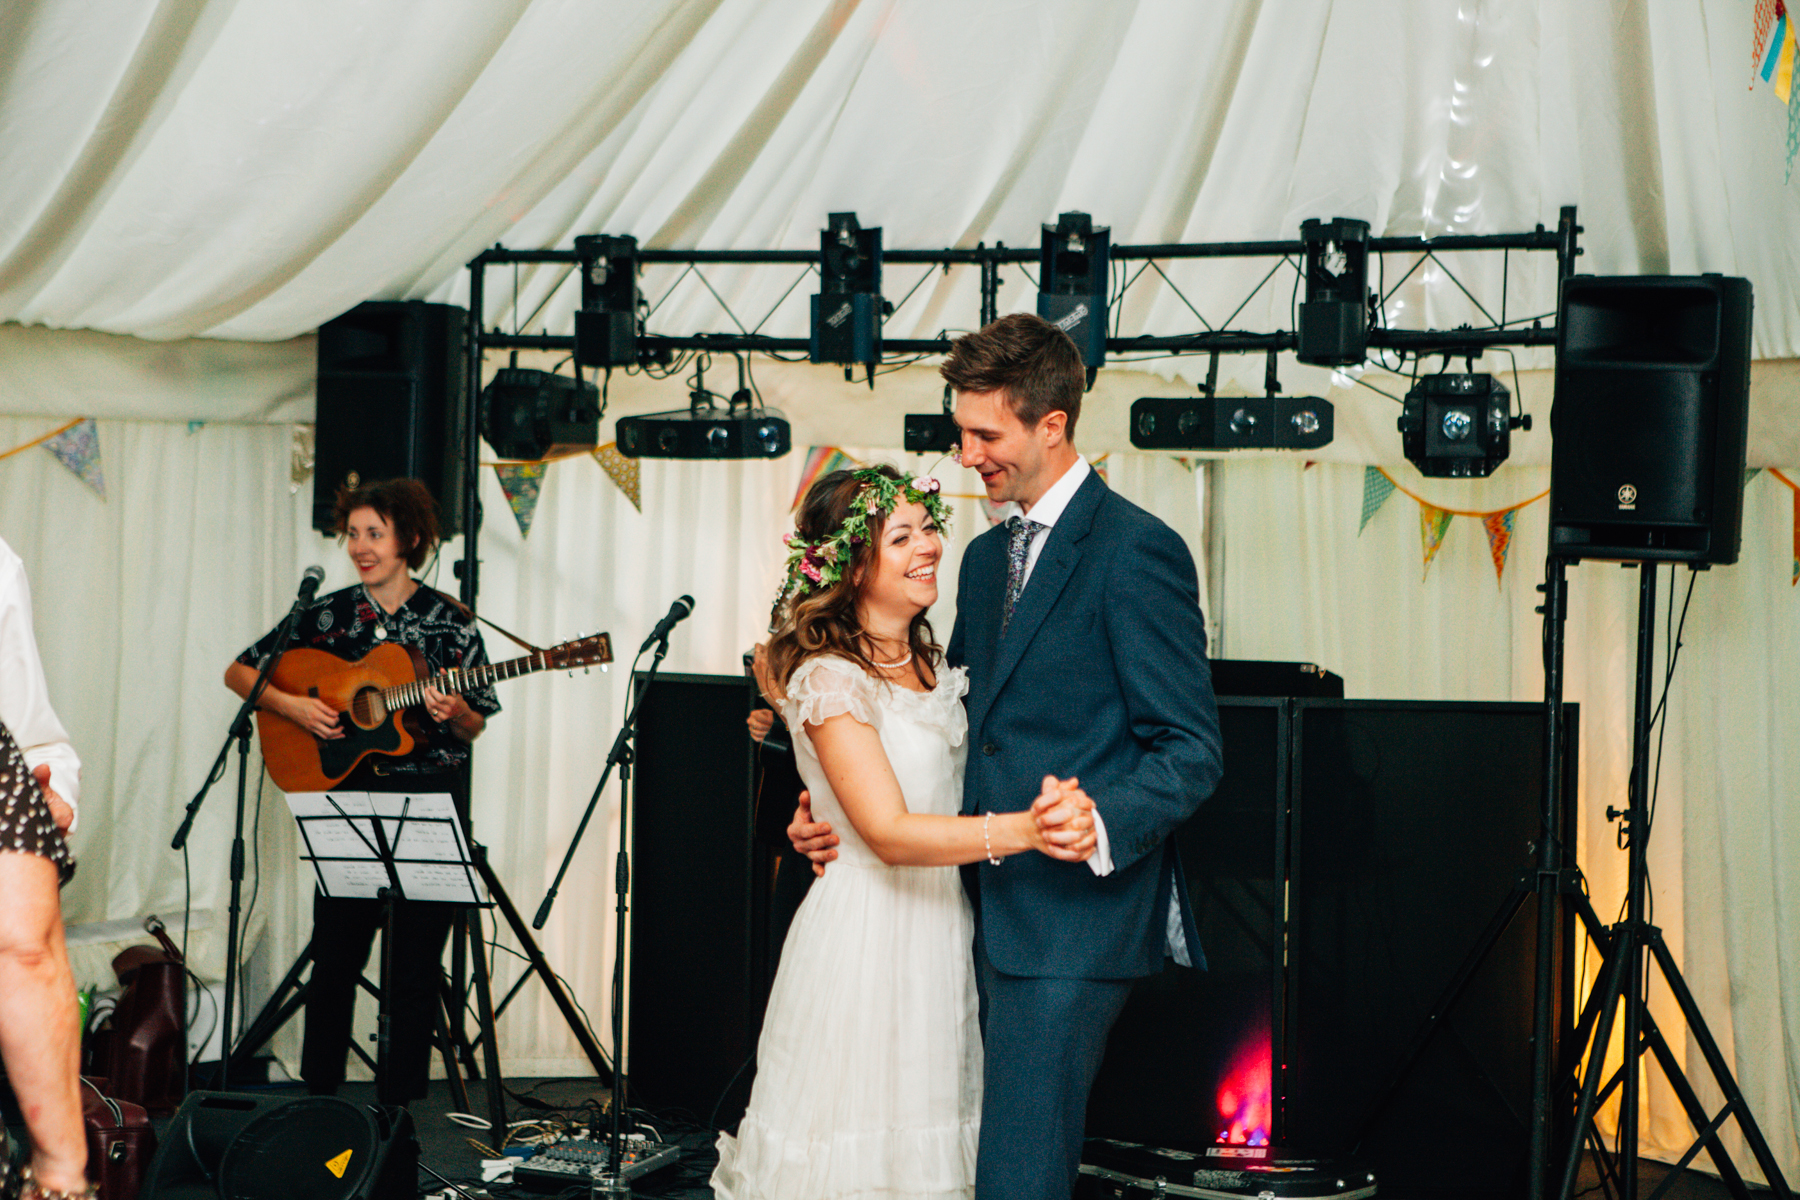 Somerset Wedding Photographer - Reception Photography